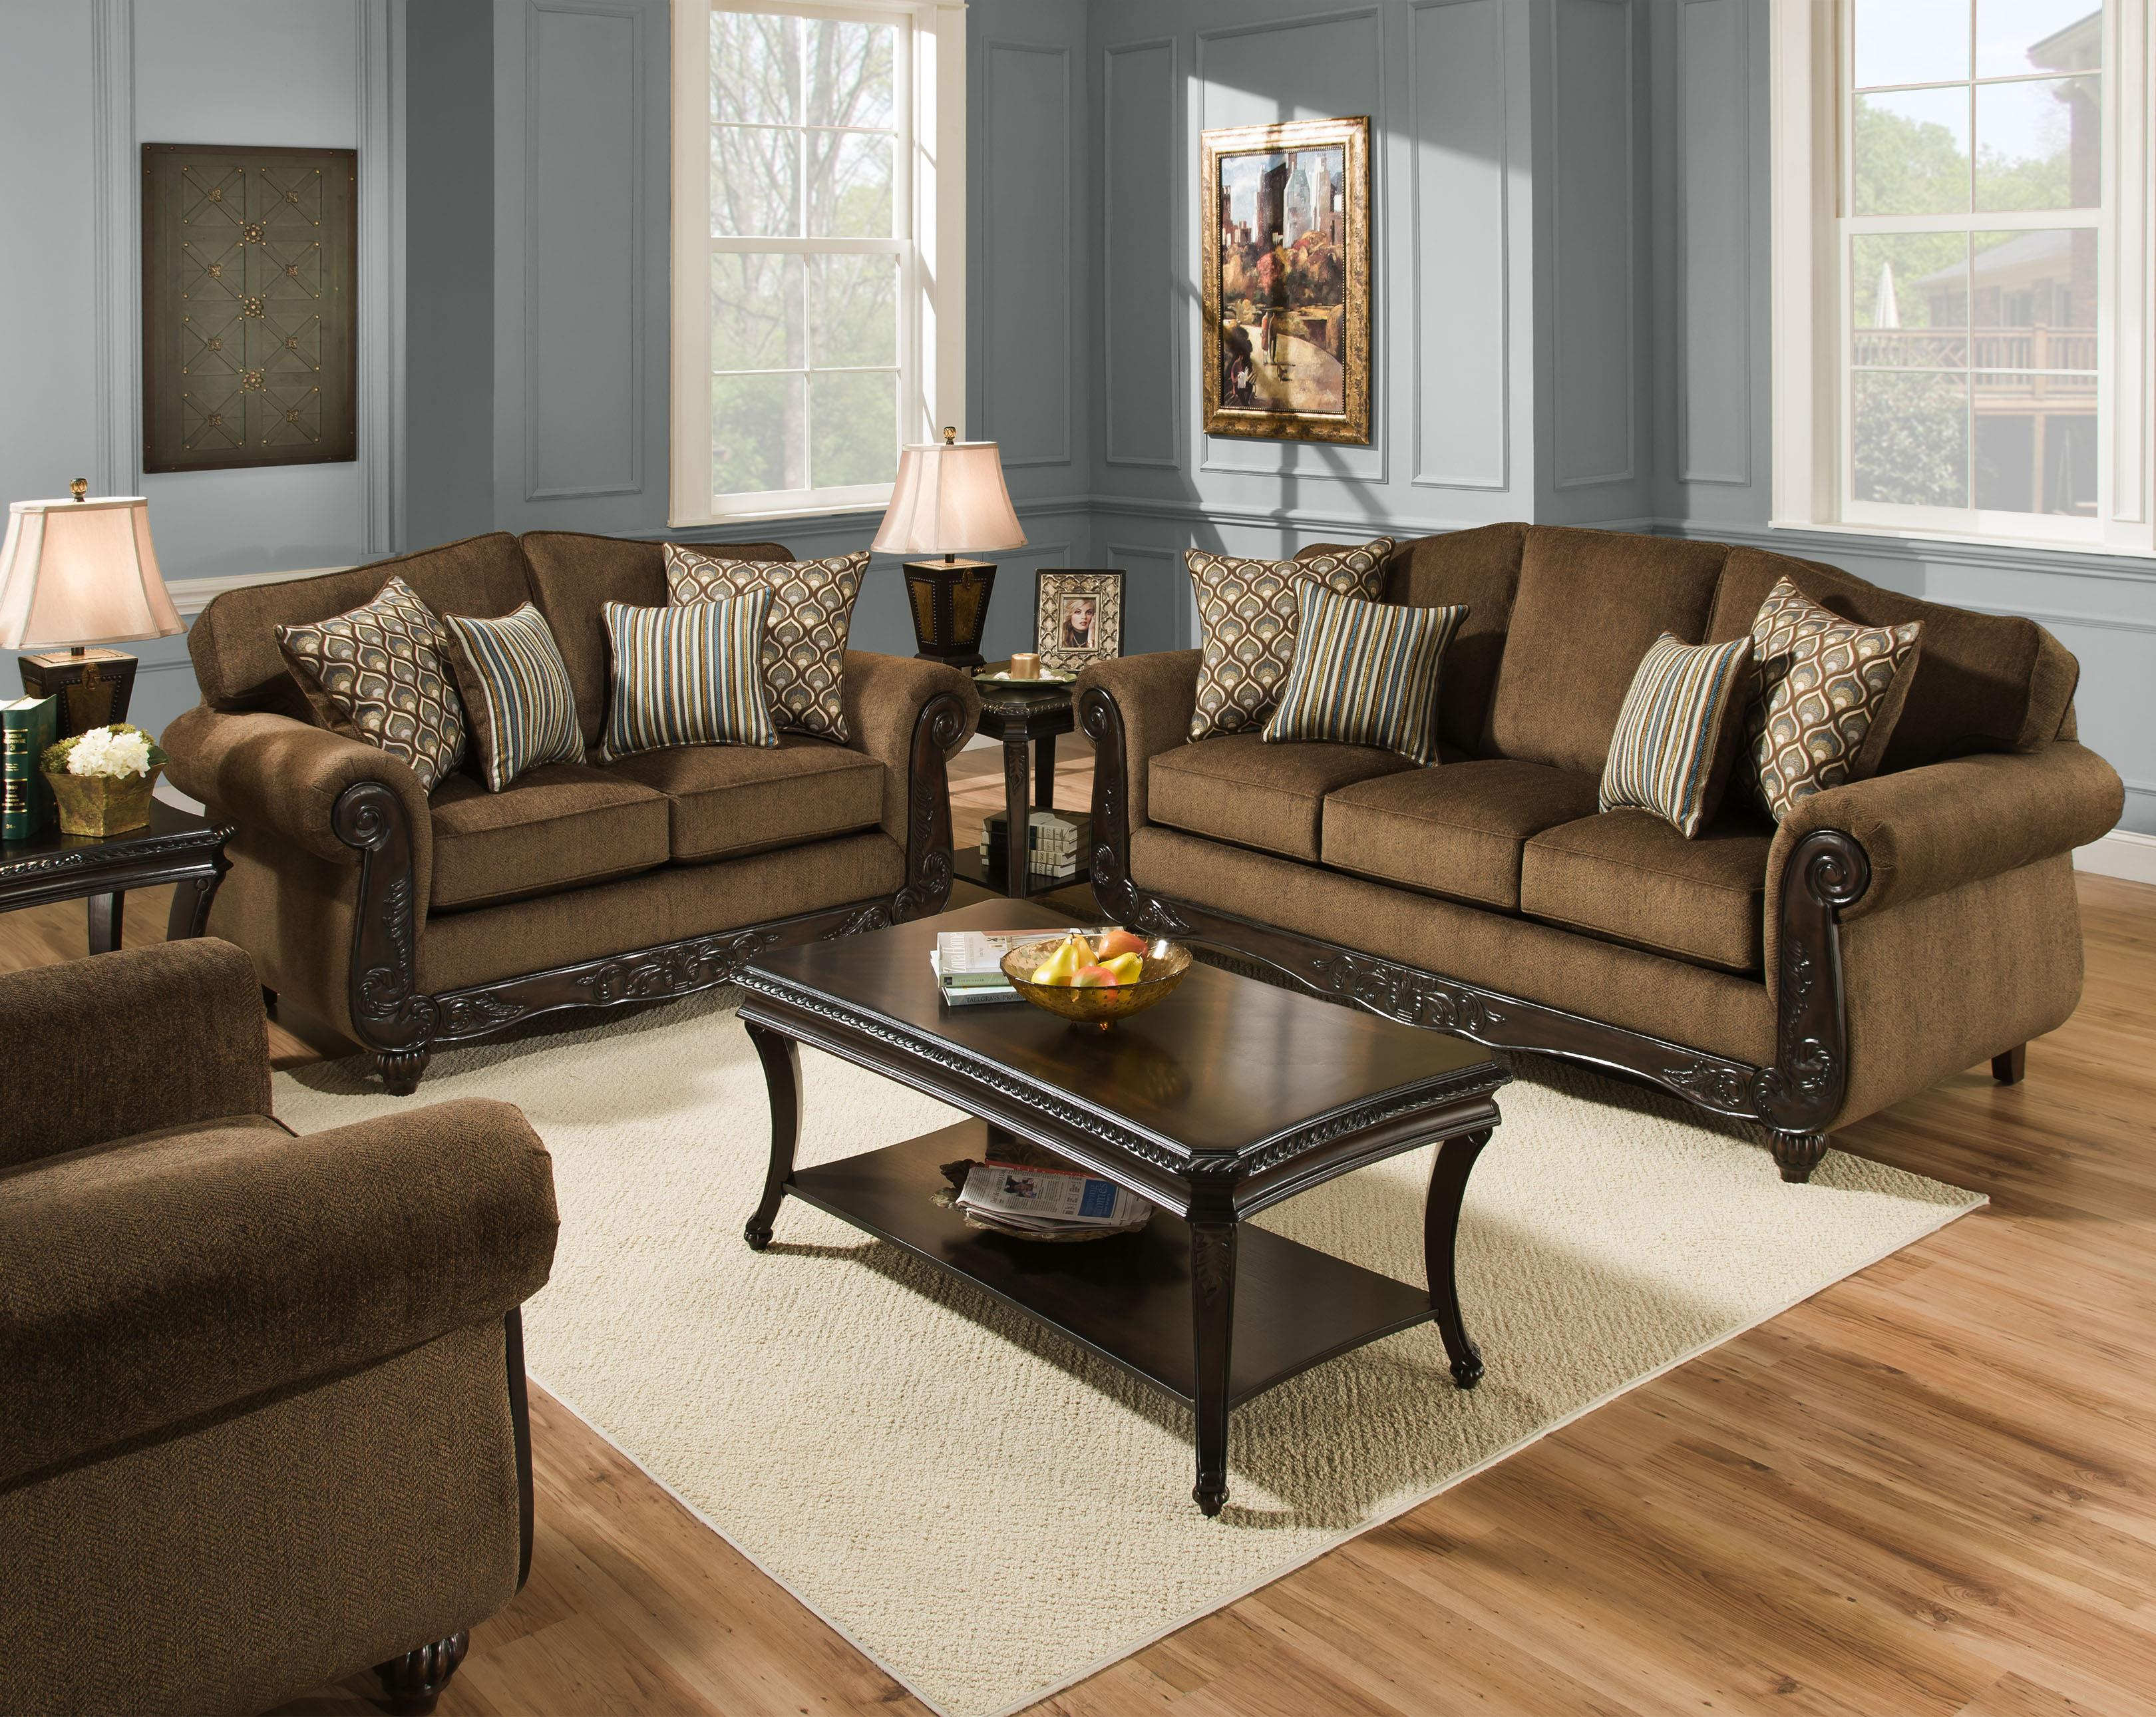 Sofa with Wooden Trim 6700 by American Furniture Wilcox